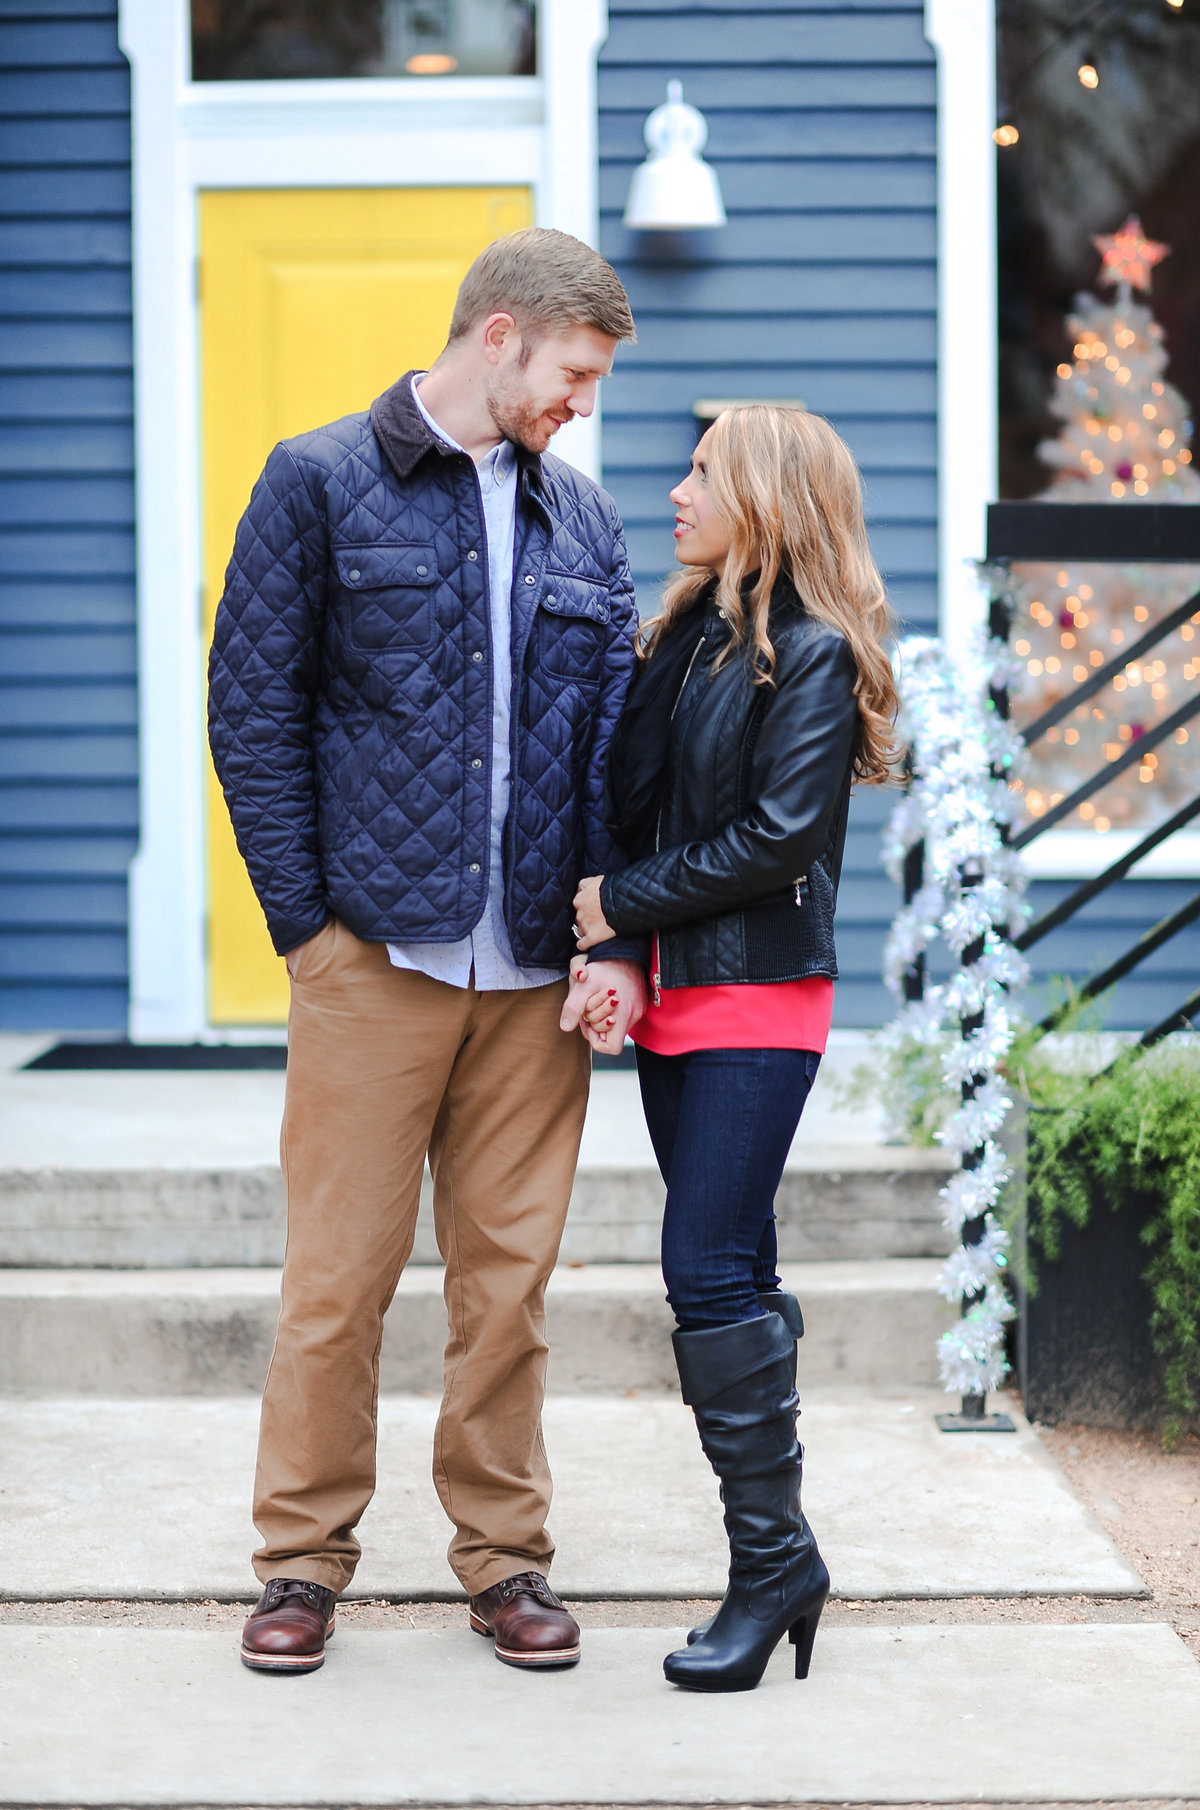 Derek-Sarah-Engagement-photos-067